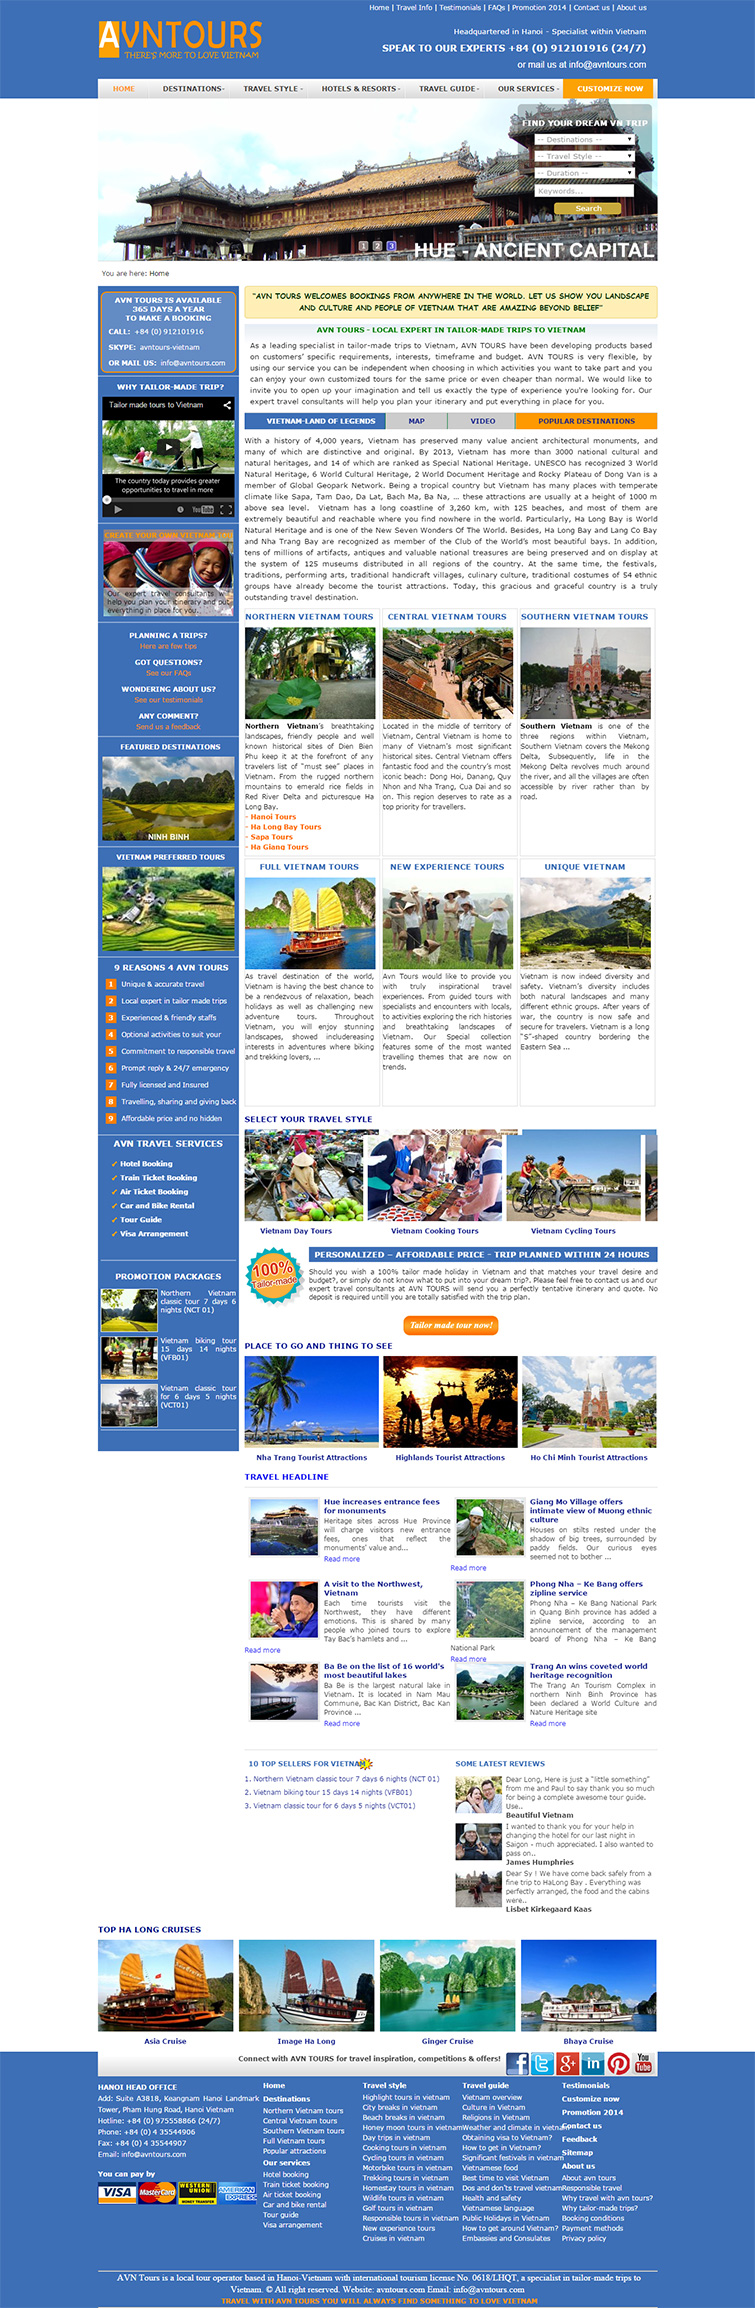 Thiết kế website du lịch đặt tours